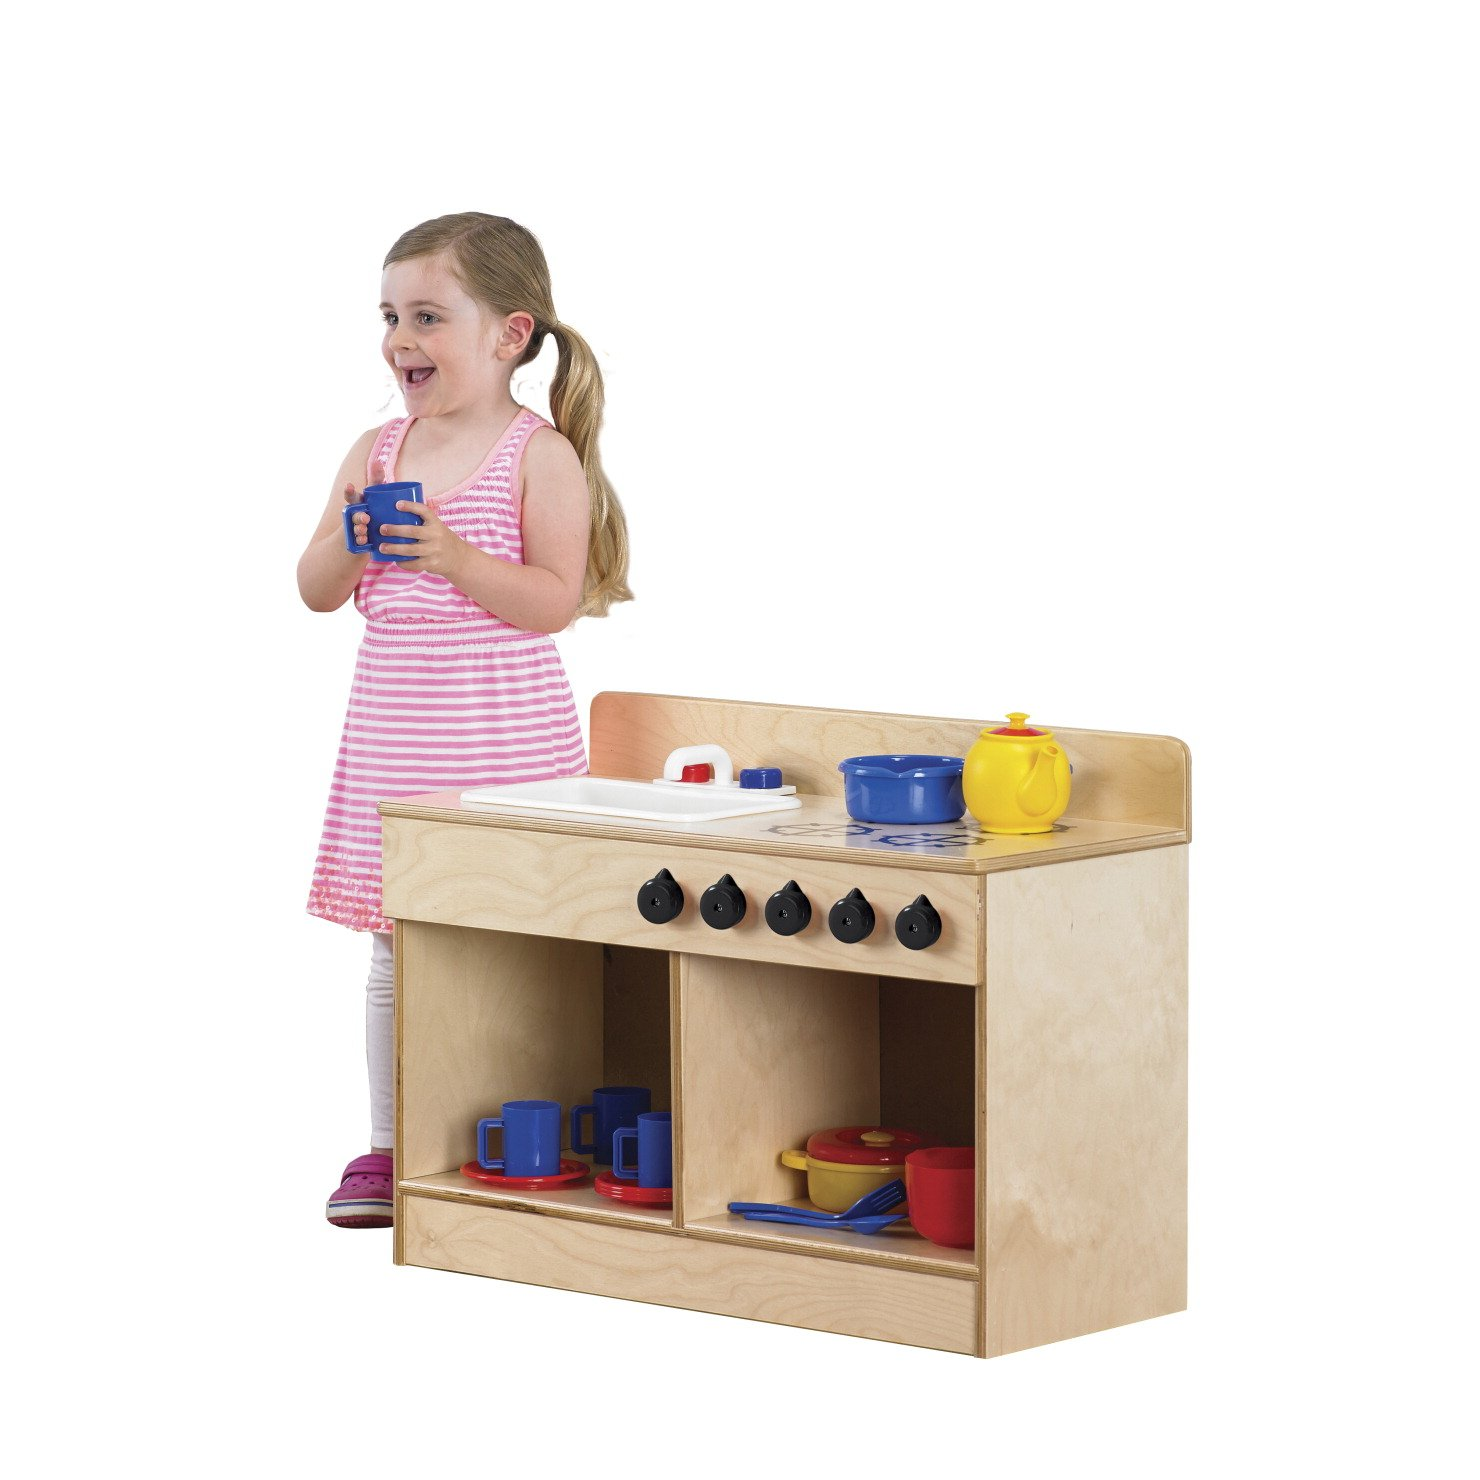 Childcraft 1491196 Toddler Sink and Stove Combo, 21.5'' Height, 13.38'' Width, 29.5'' Length, Natural Wood by Childcraft (Image #8)